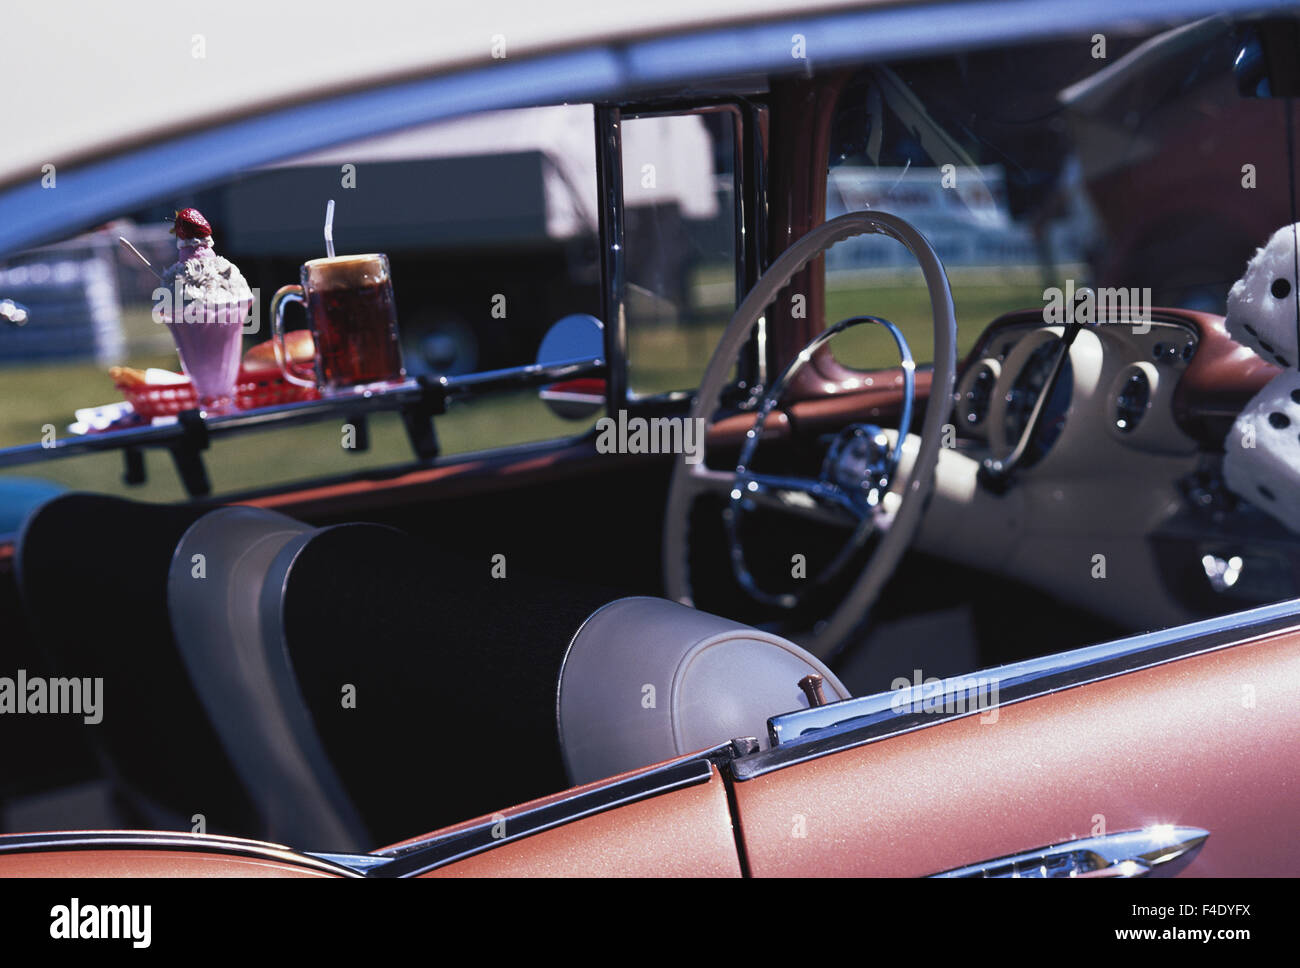 Sports Coupe Stock Photos Images Alamy 1957 Chevy Bucket Seats Chevrolet Bel Air Interior With Hanging Fuzzy Dice Large Format Sizes